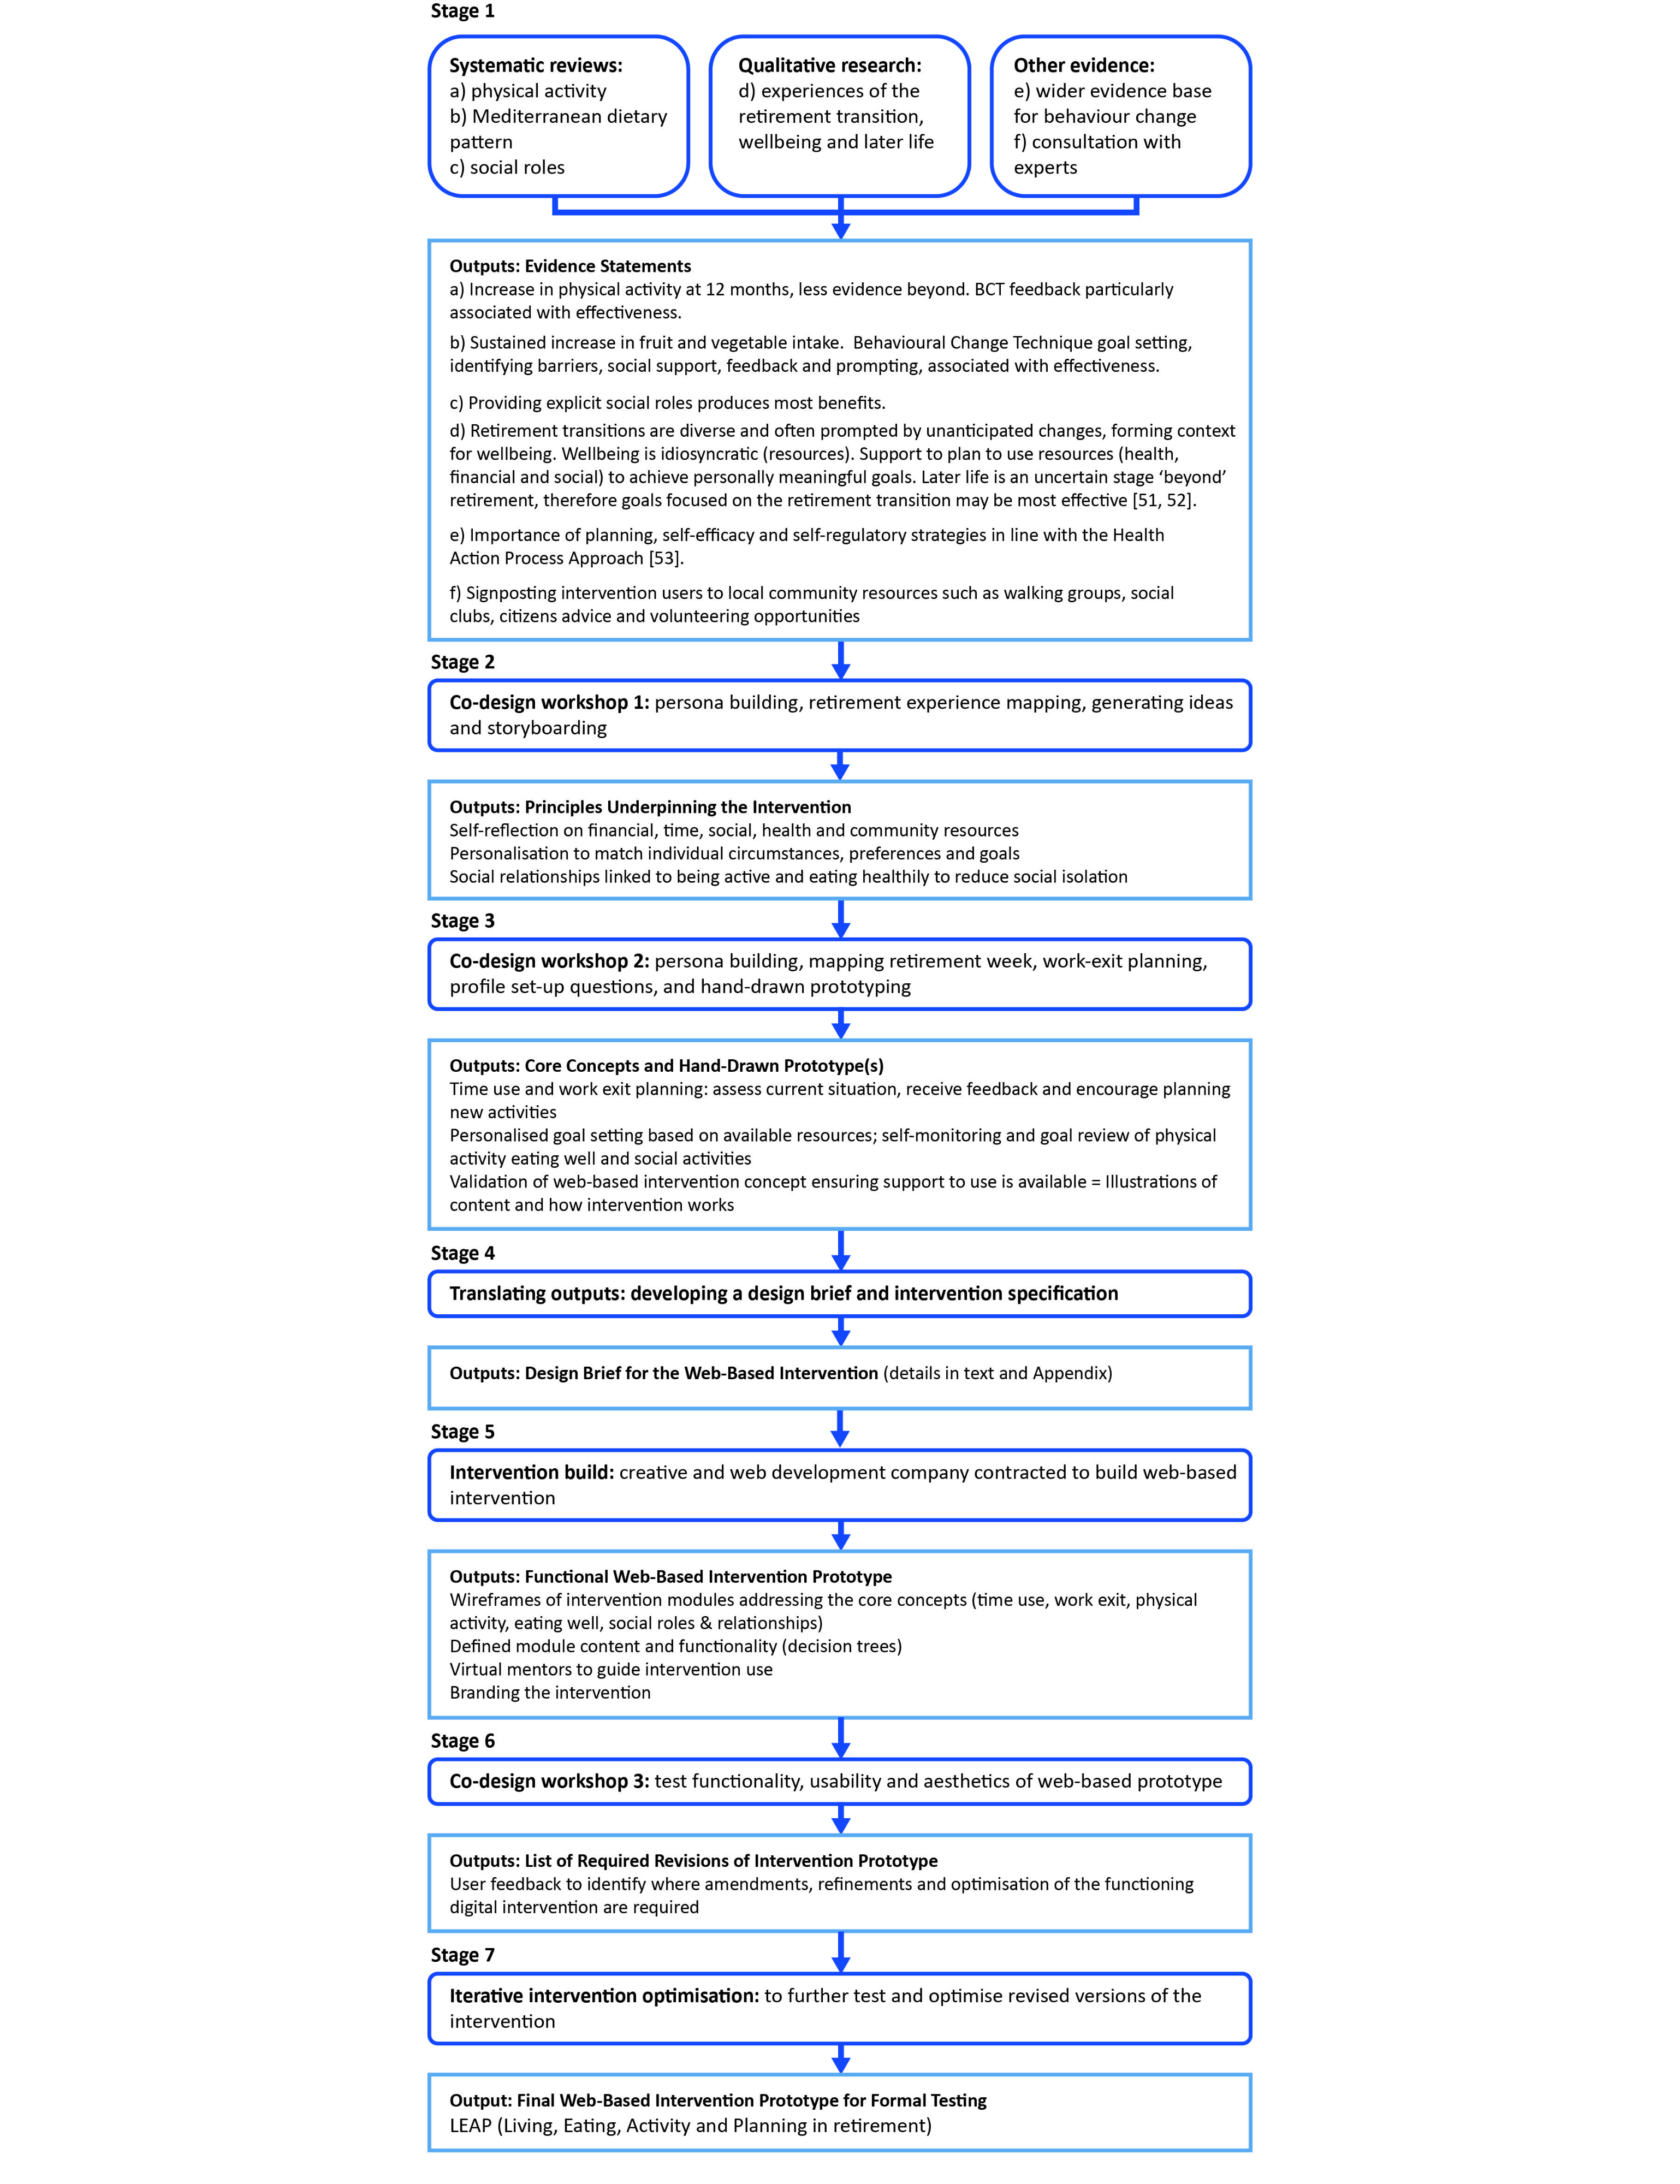 JMIR - Integrating Evidence From Systematic Reviews, Qualitative